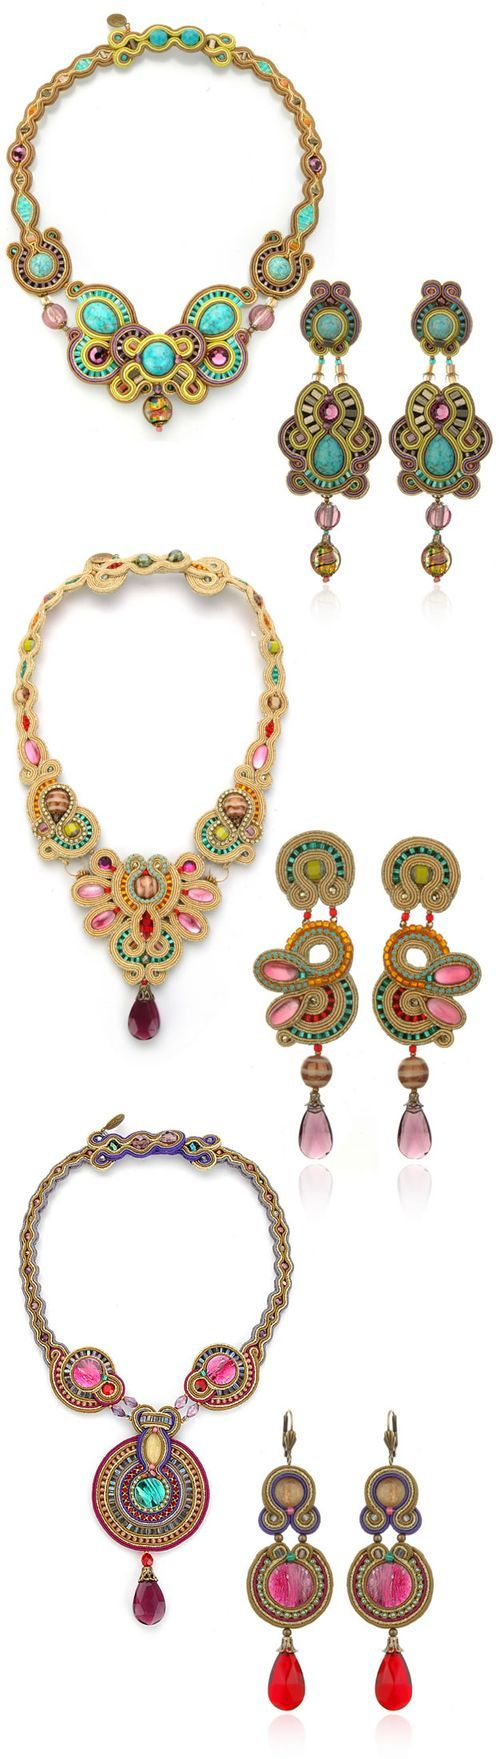 soutache - earrings and necklaces